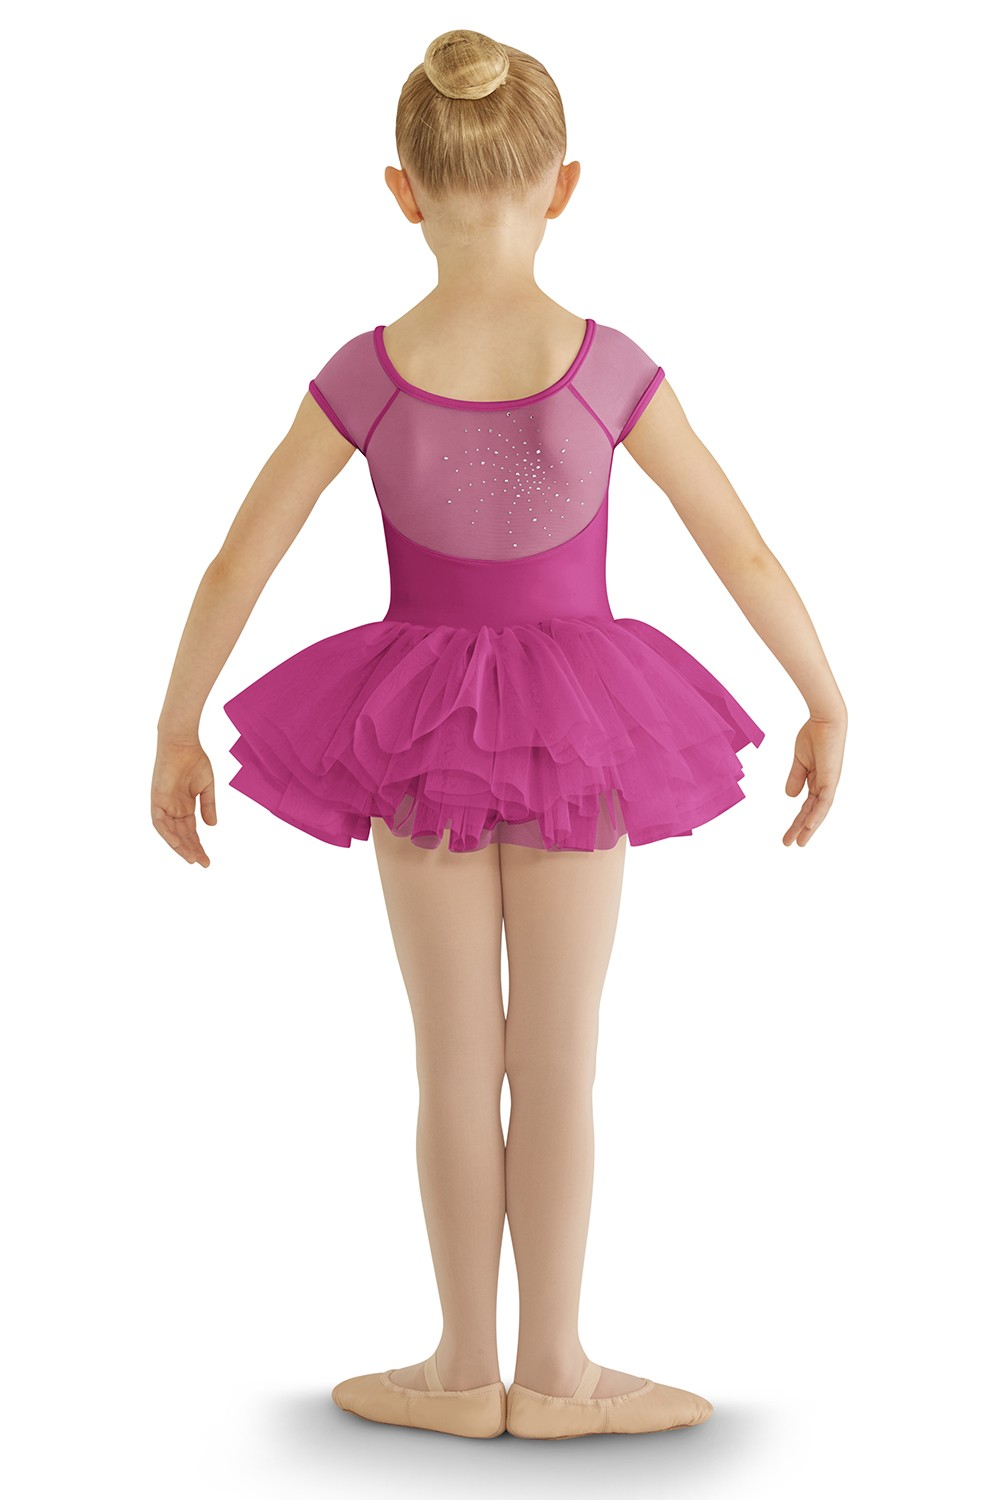 Saiph Children's Dance Leotards